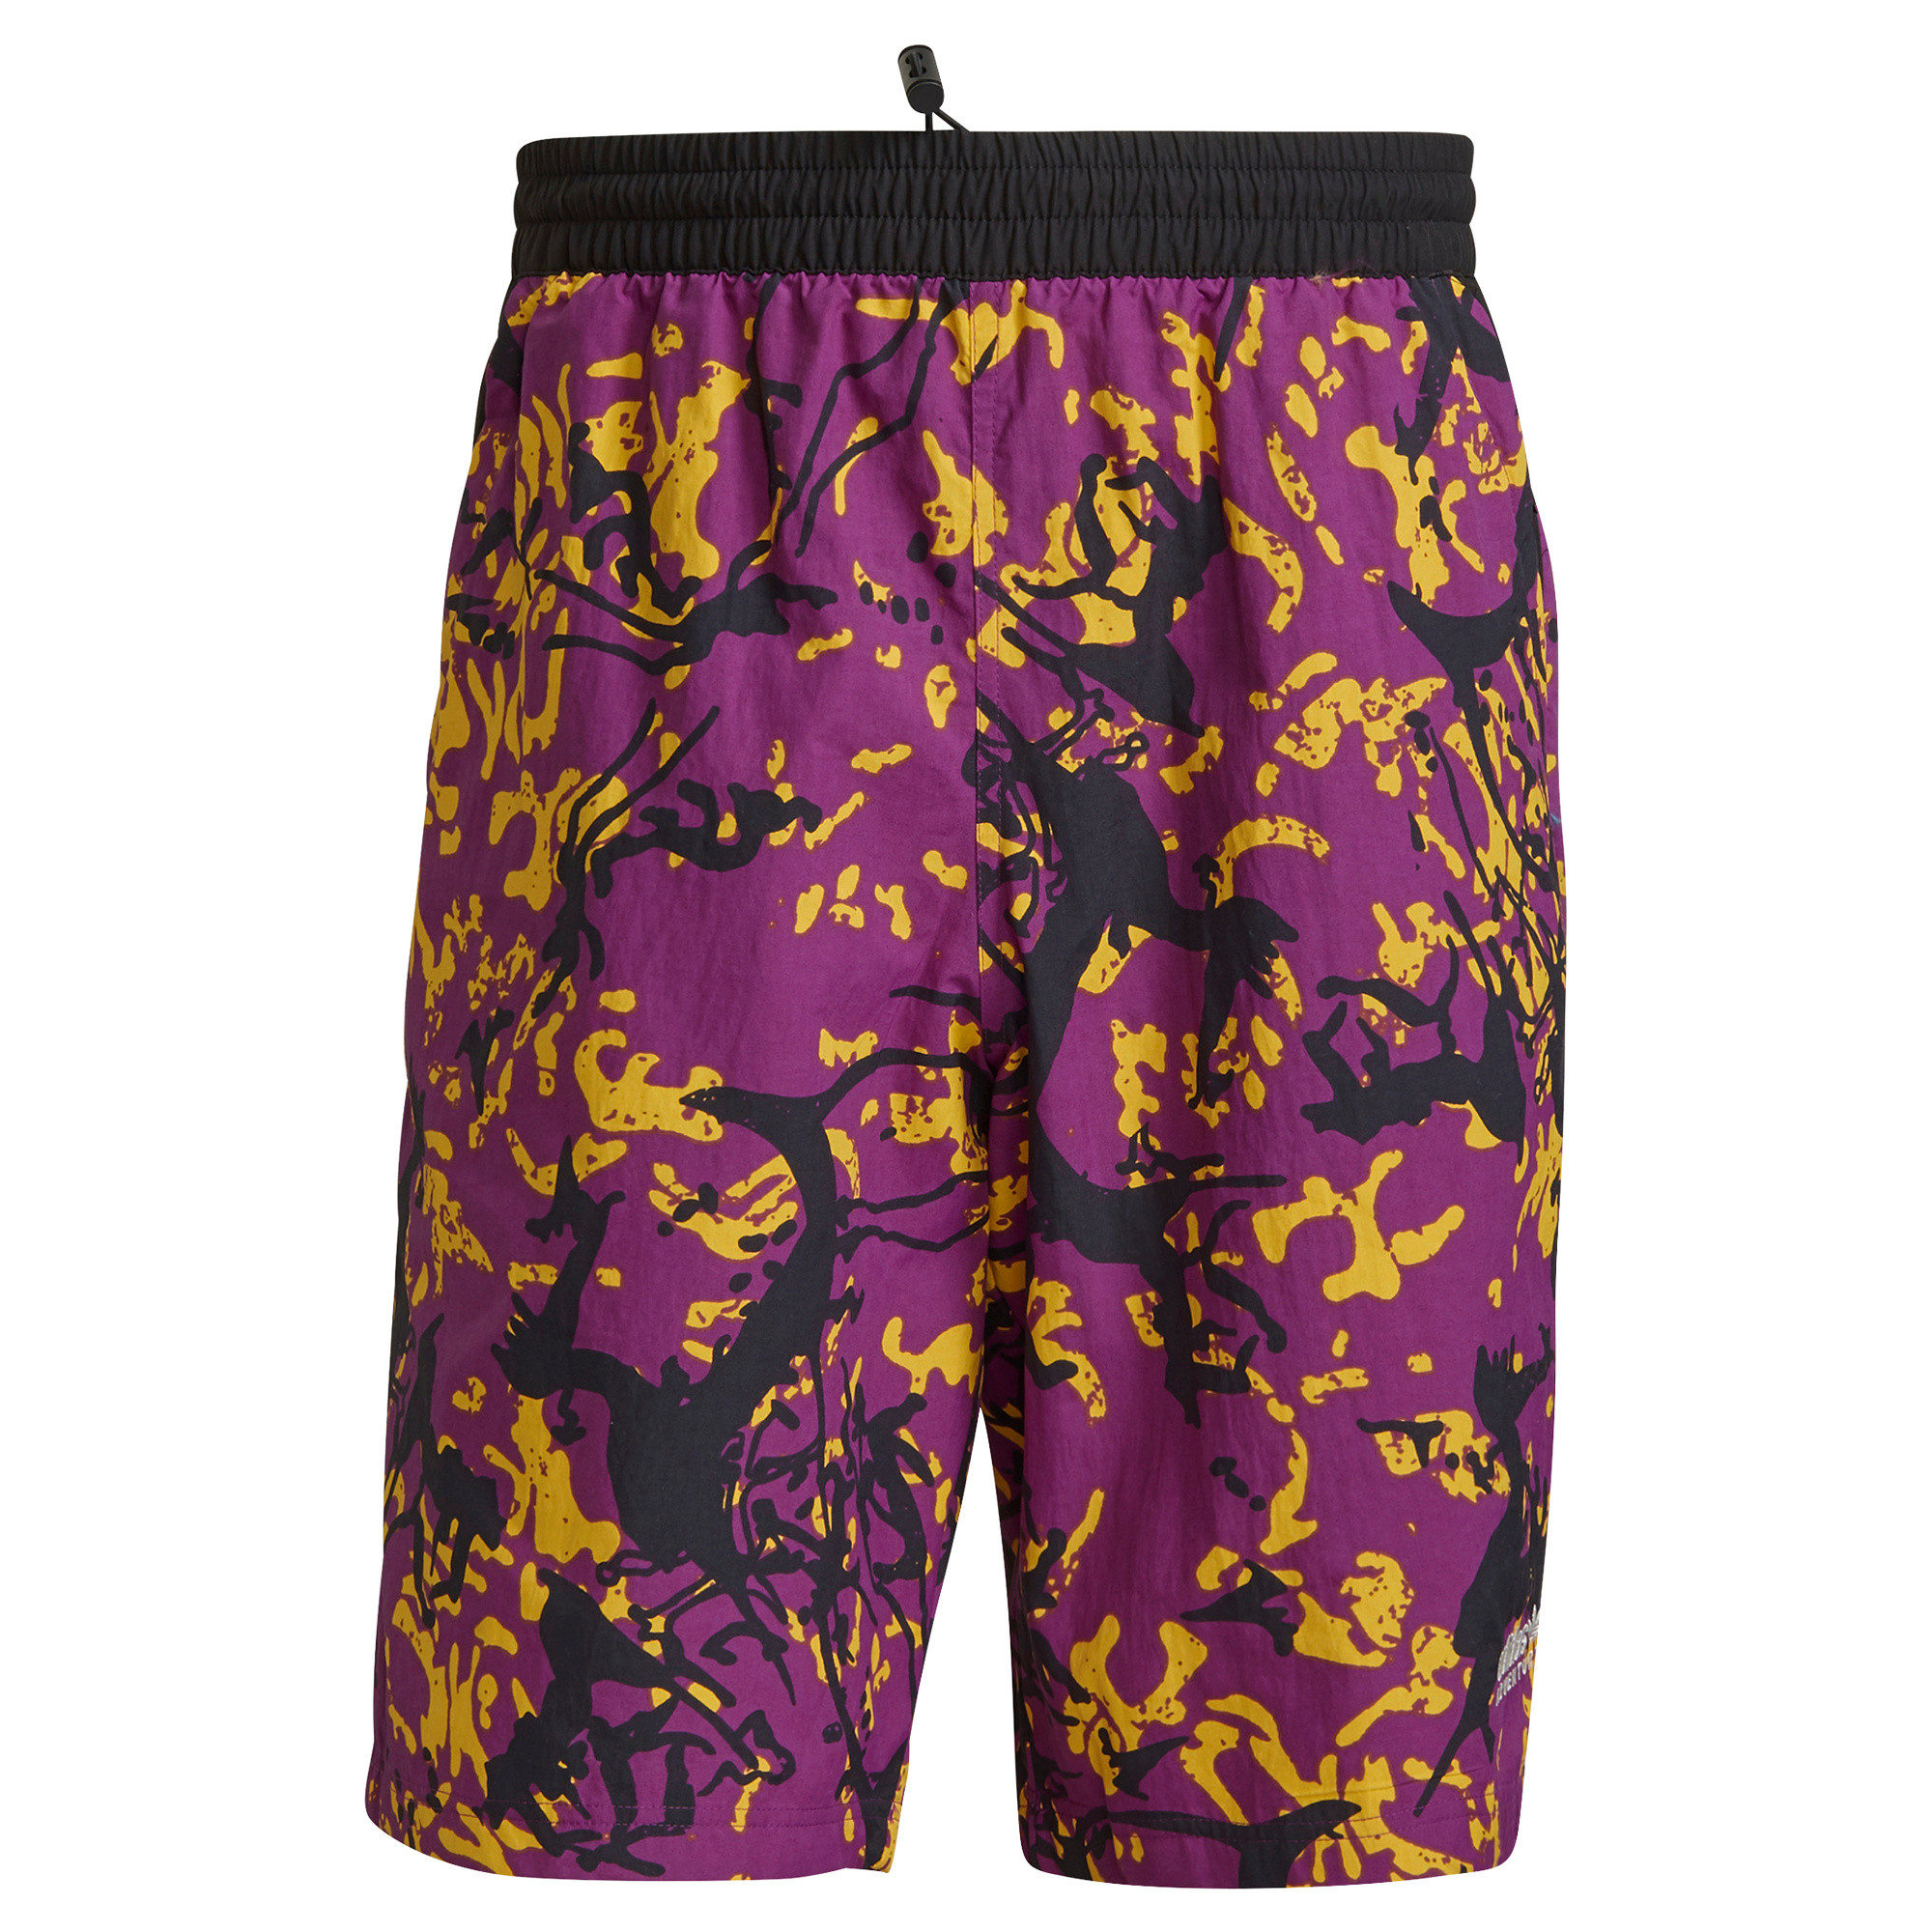 Shorts adidas Adventure Archive Printed Woven, Multicolor, large image number 0